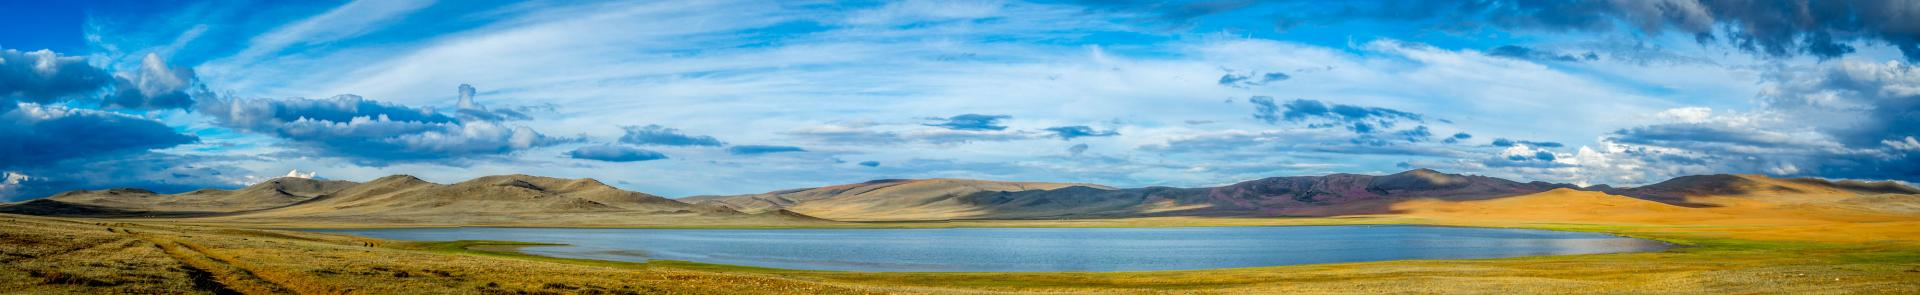 Mongolie38